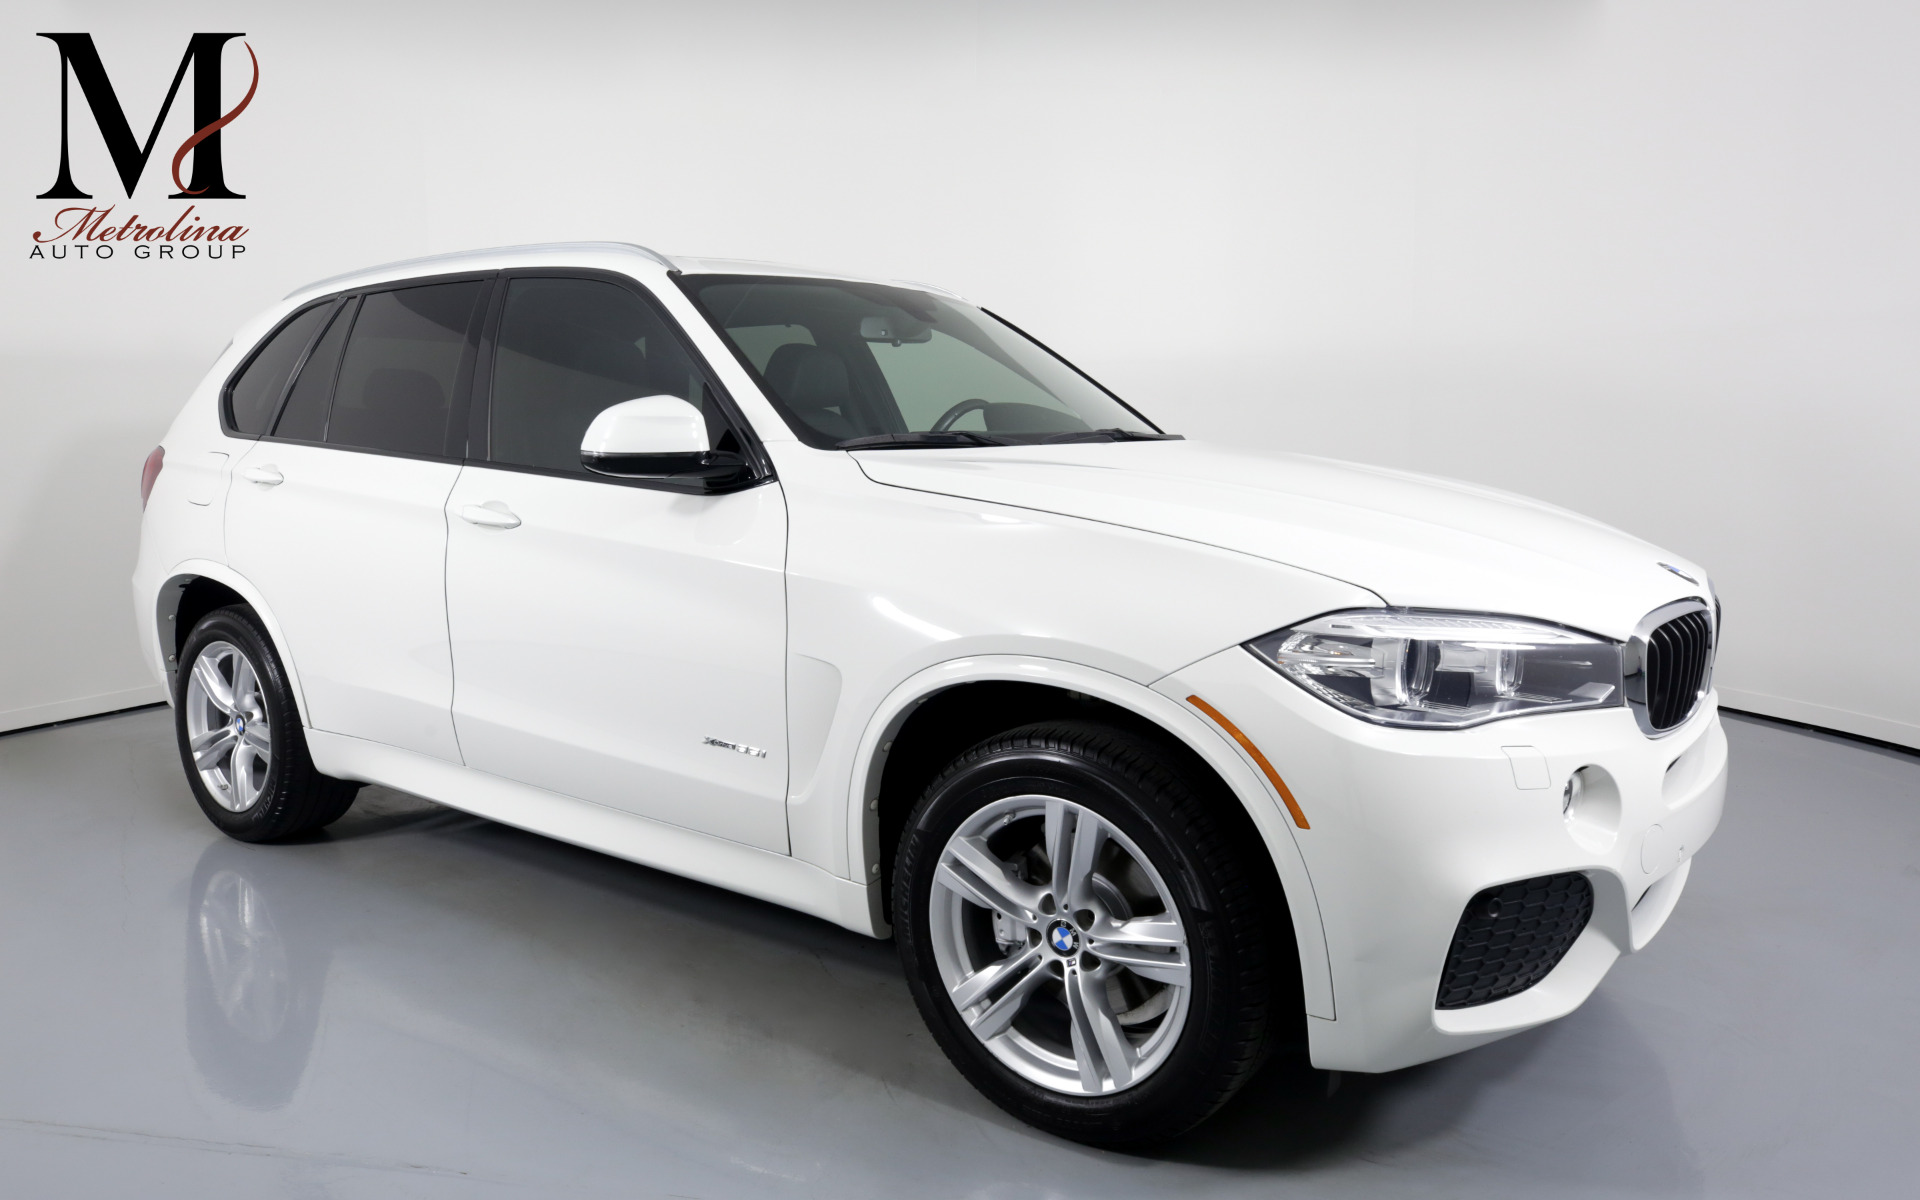 Used 2017 BMW X5 xDrive35i for sale $31,996 at Metrolina Auto Group in Charlotte NC 28217 - 1